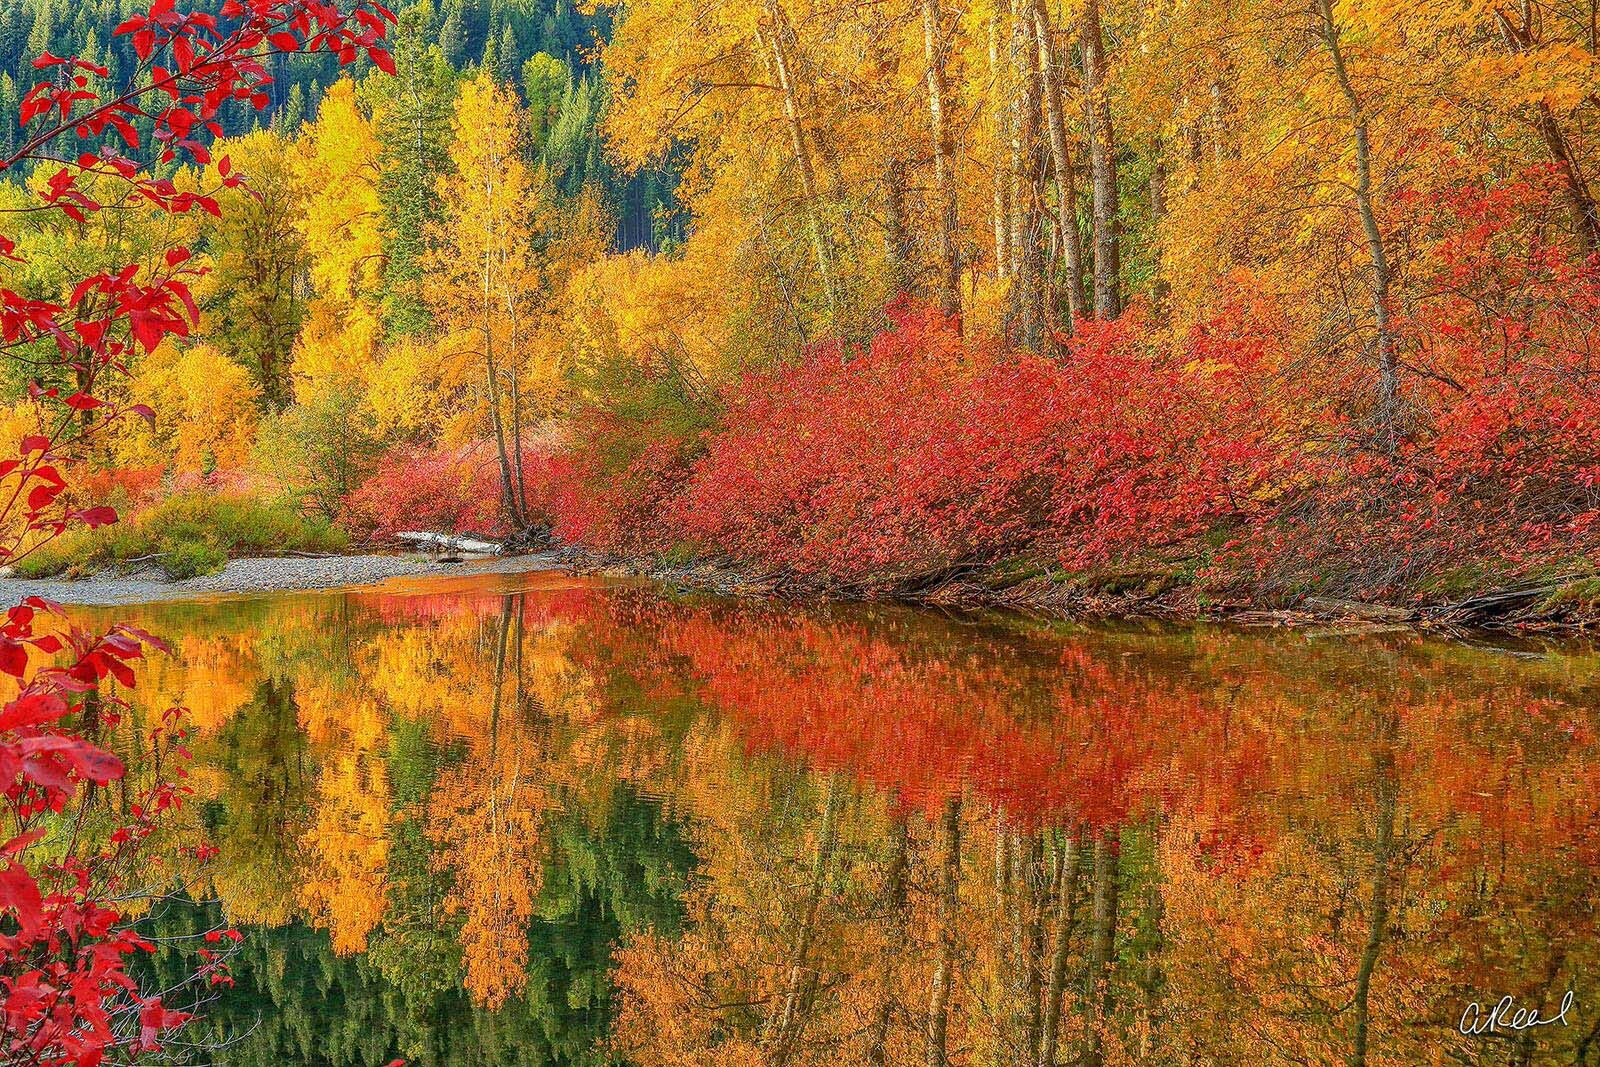 A photograph of red and yellow bushes and trees reflected in a slow moving stream.